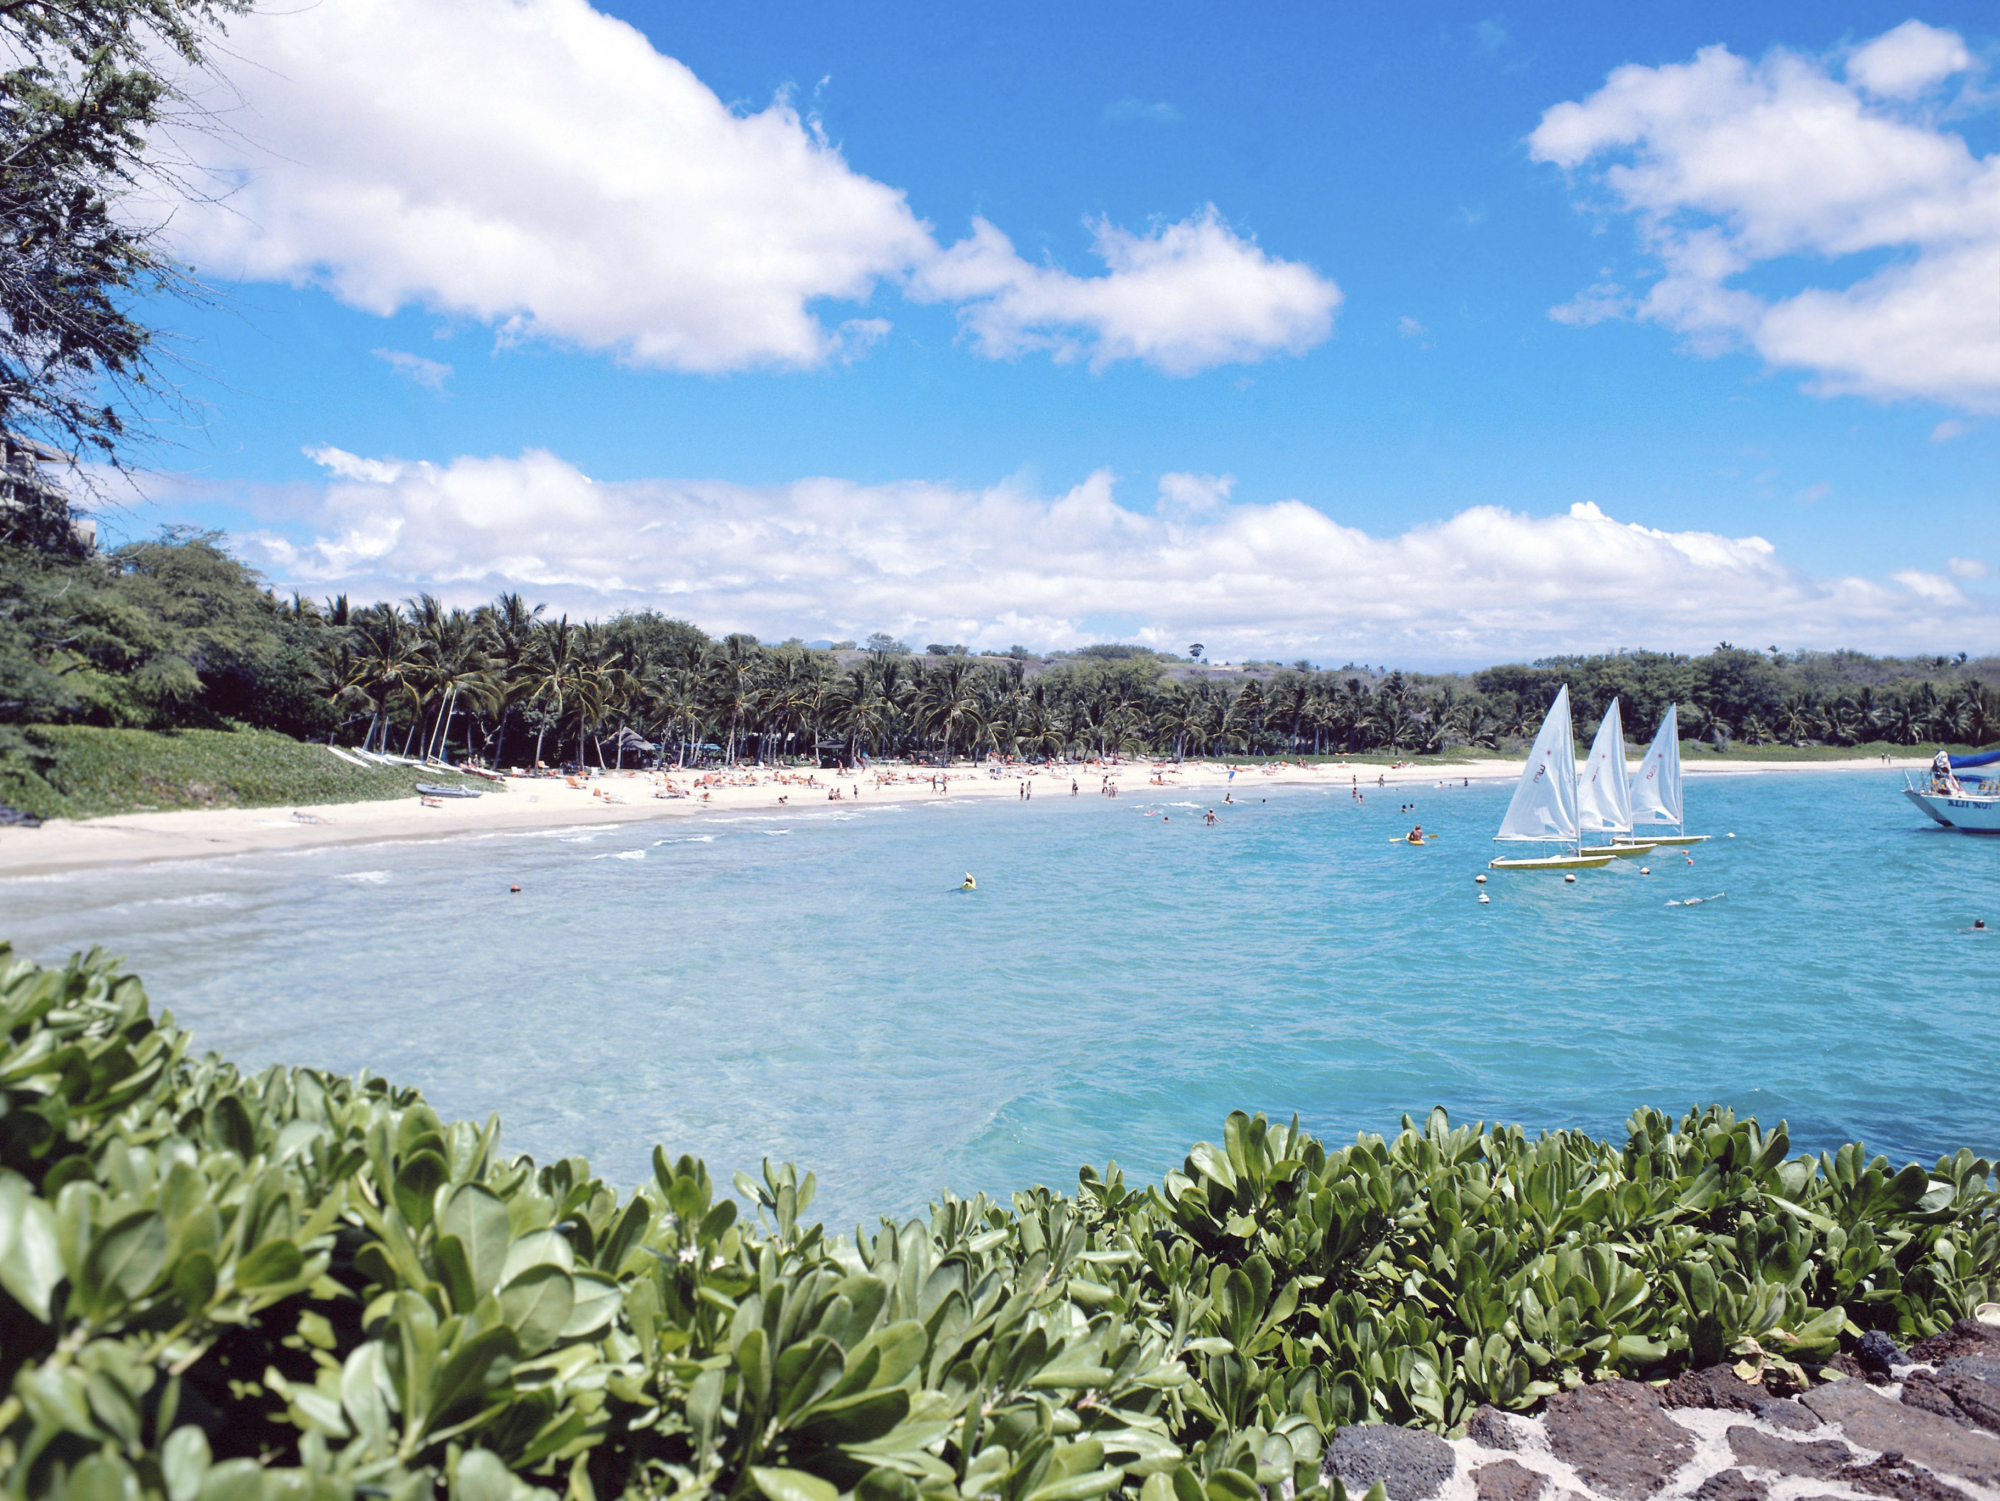 The Best Beaches For Casual Swimming Amp Snorkeling In Maui